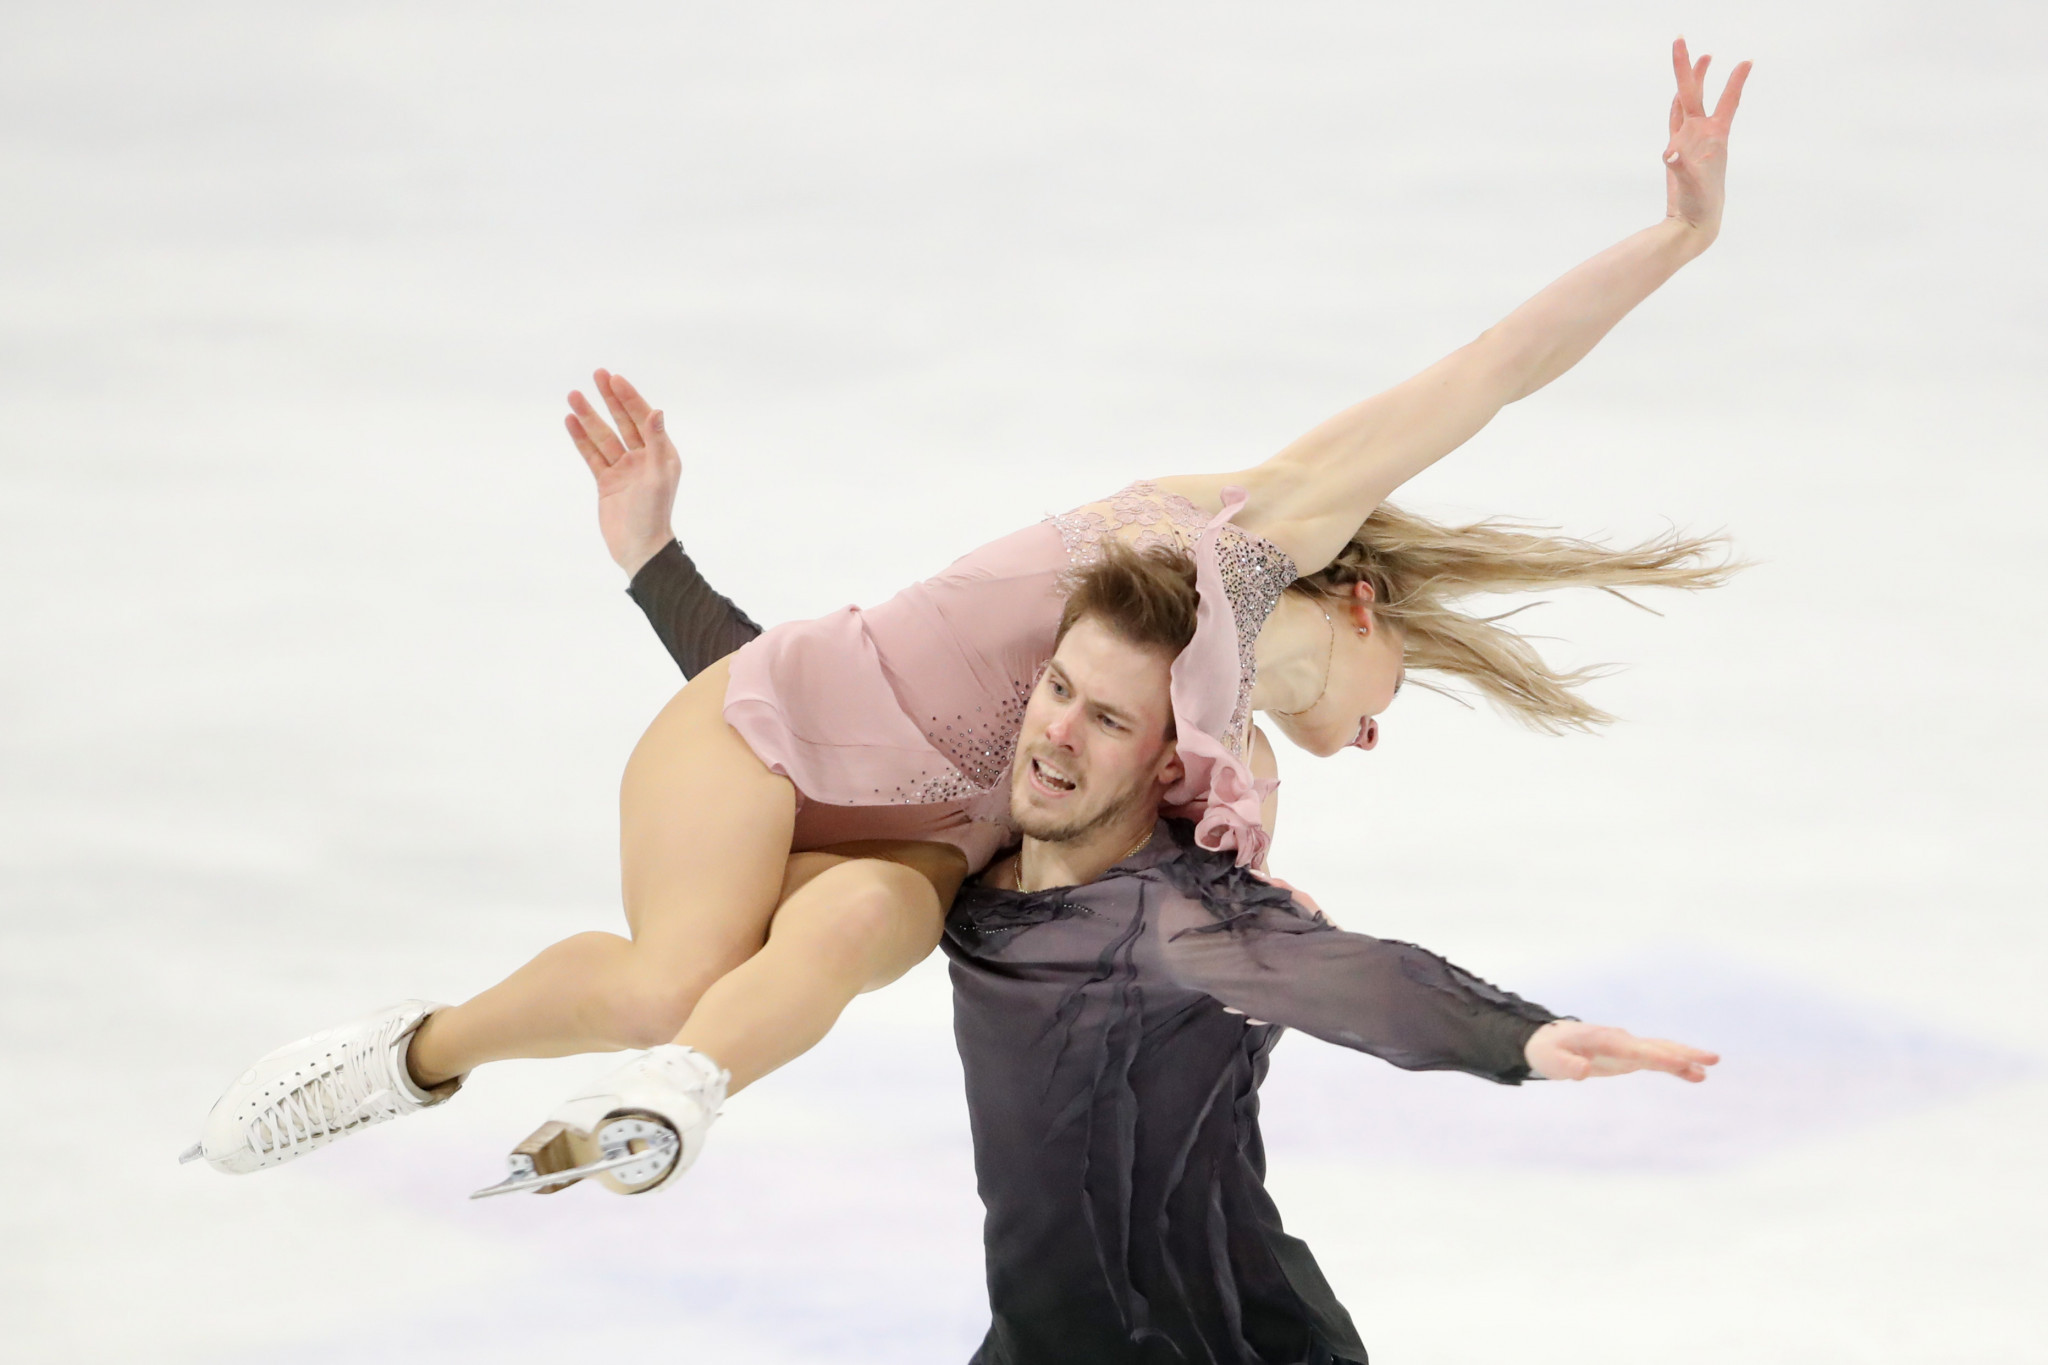 Victoria Sinitsina and Nikita Katsalapov of the Figure Skating Federation of Russia won the ice dance title in Stockholm ©Getty Images